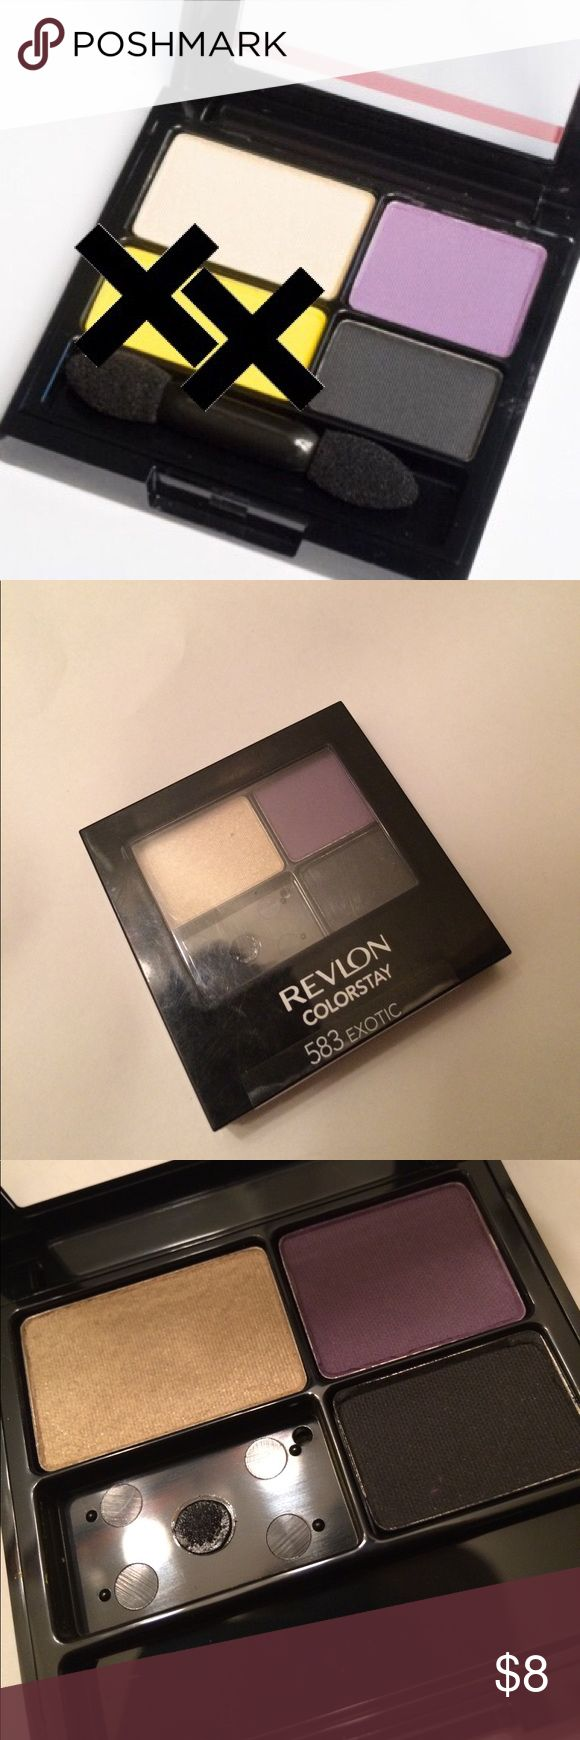 De-Potted Revlon Eyeshadow Palette Revlon Colorstay 16 Hour Eyeshadow palette 583 EXOTIC. Includes shades 1, 2, 4. They are totally brand new, never touched or swatched. Bought this for the yellow shade and de-potted it. This is a great add on item for bundles!  #'s shade blend crease highlight quad trio pigment purple black cream shimmer matte primer recommended revlon love is on color stay de-pot de-potting all day wear no smudge Revlon Makeup Eyeshadow